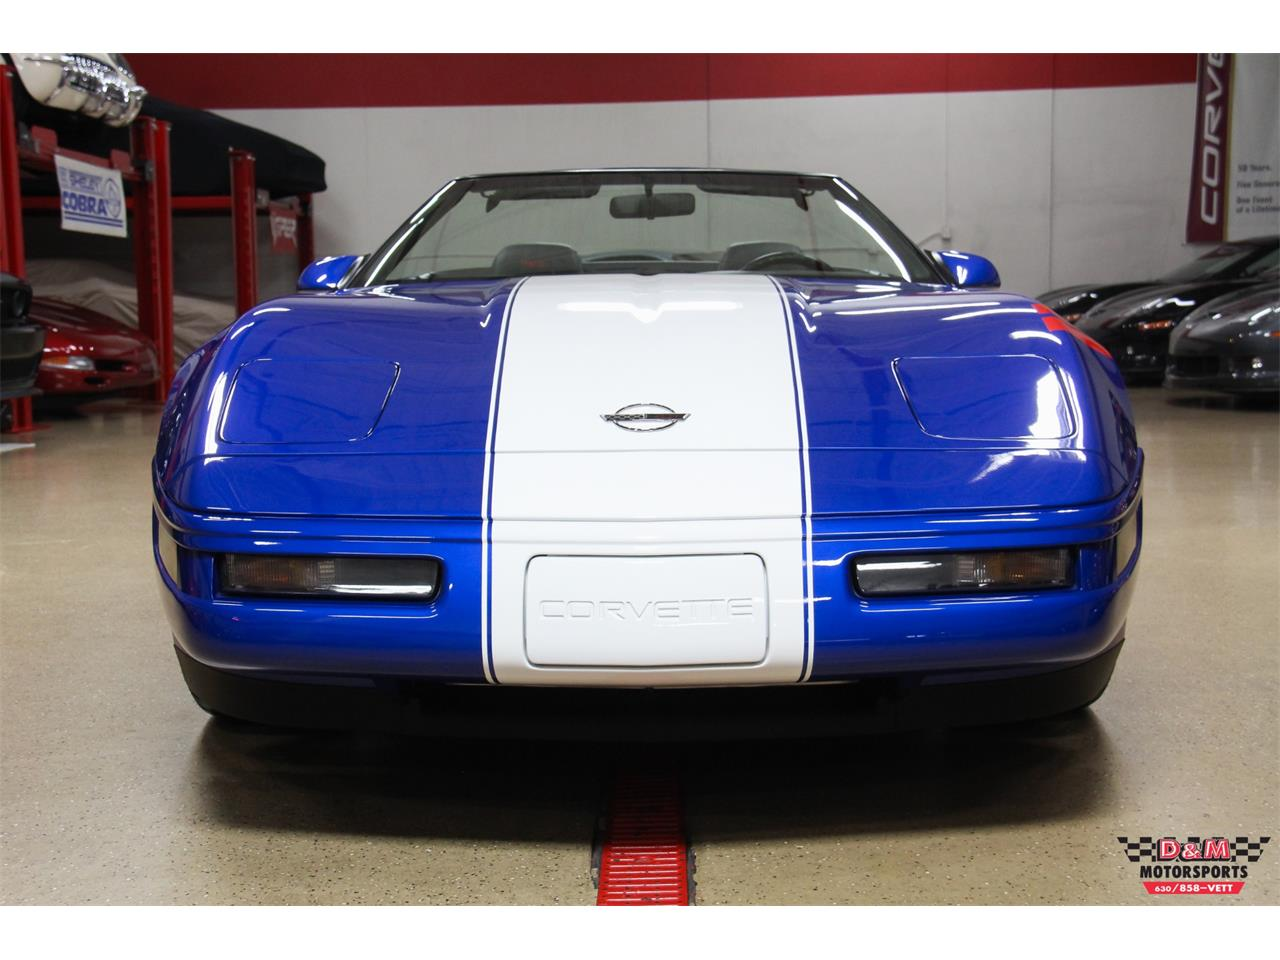 Large Picture of 1996 Corvette Offered by D & M Motorsports - LV9Z